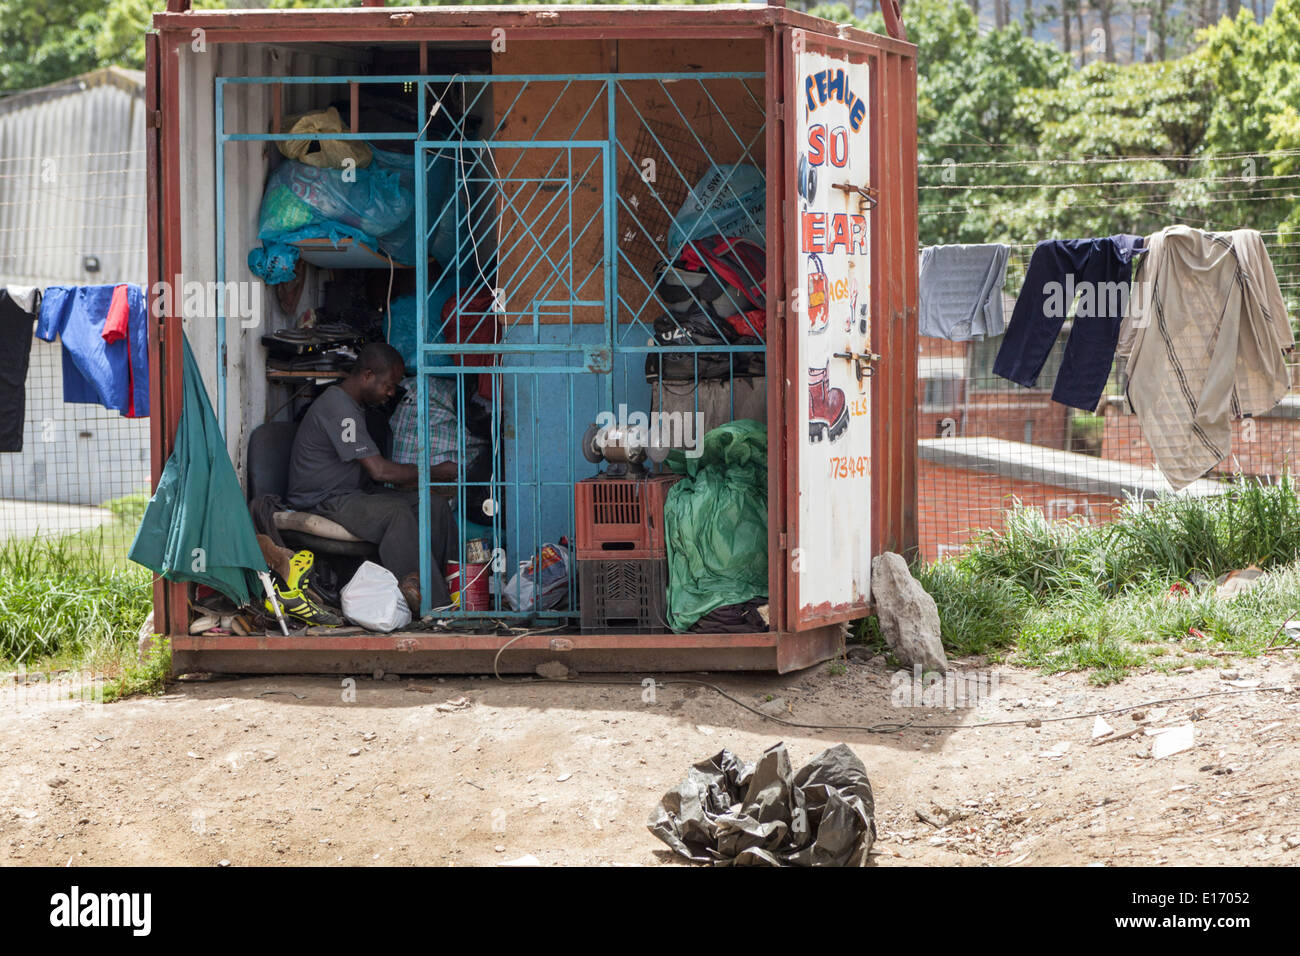 Shoe repair shop in a shipping container,  in Imizamo Yethu Township (Mandela Park), Cape Town, South Africa Stock Photo